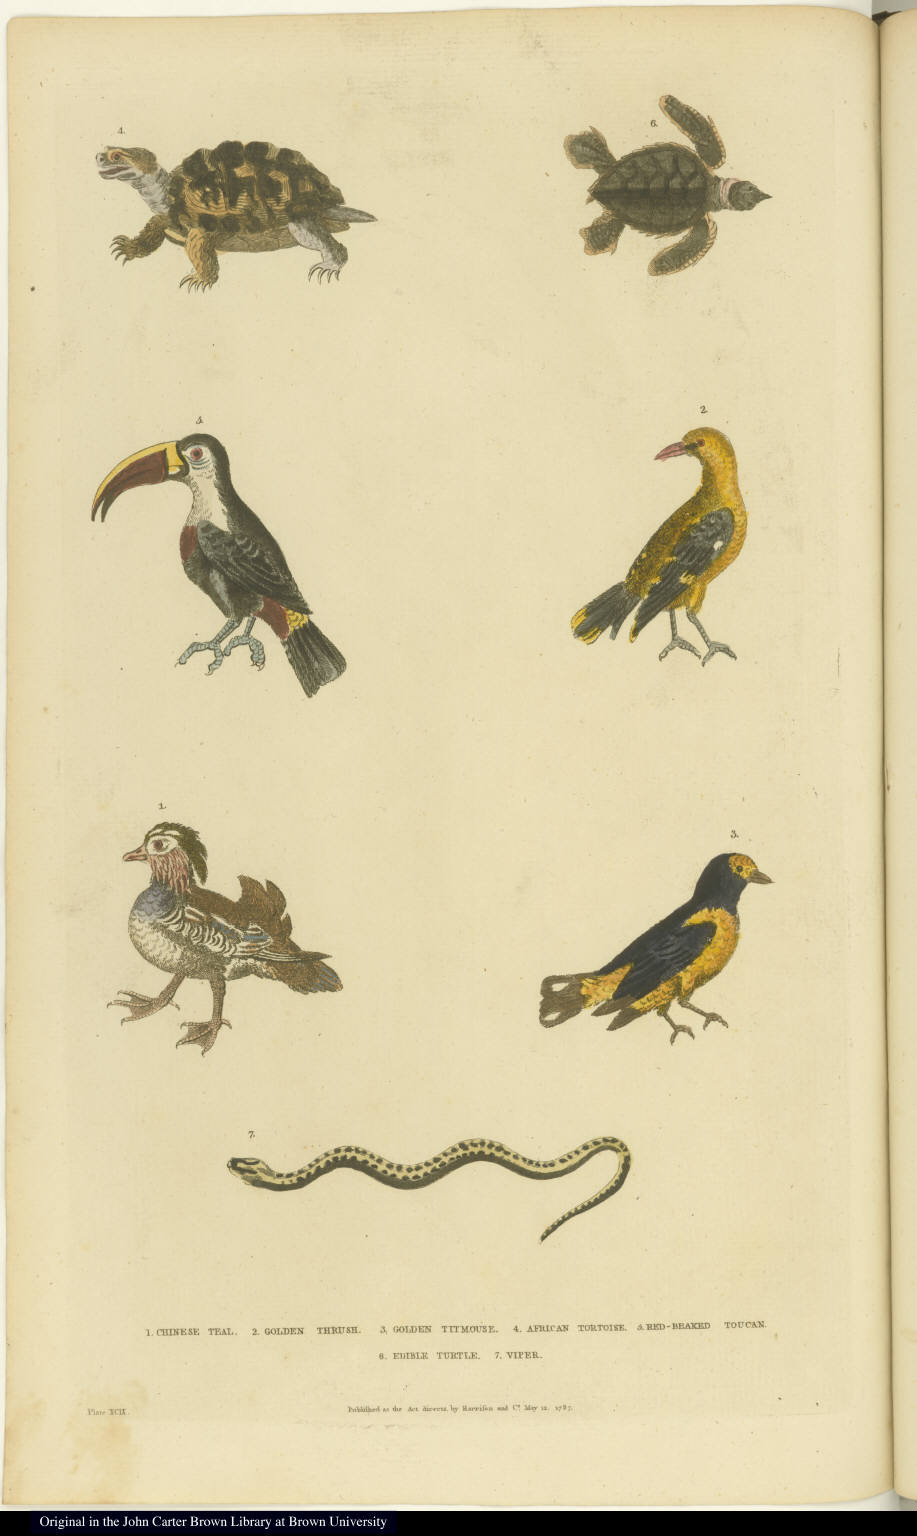 [Various birds, a snake, and tortoises or turtles]